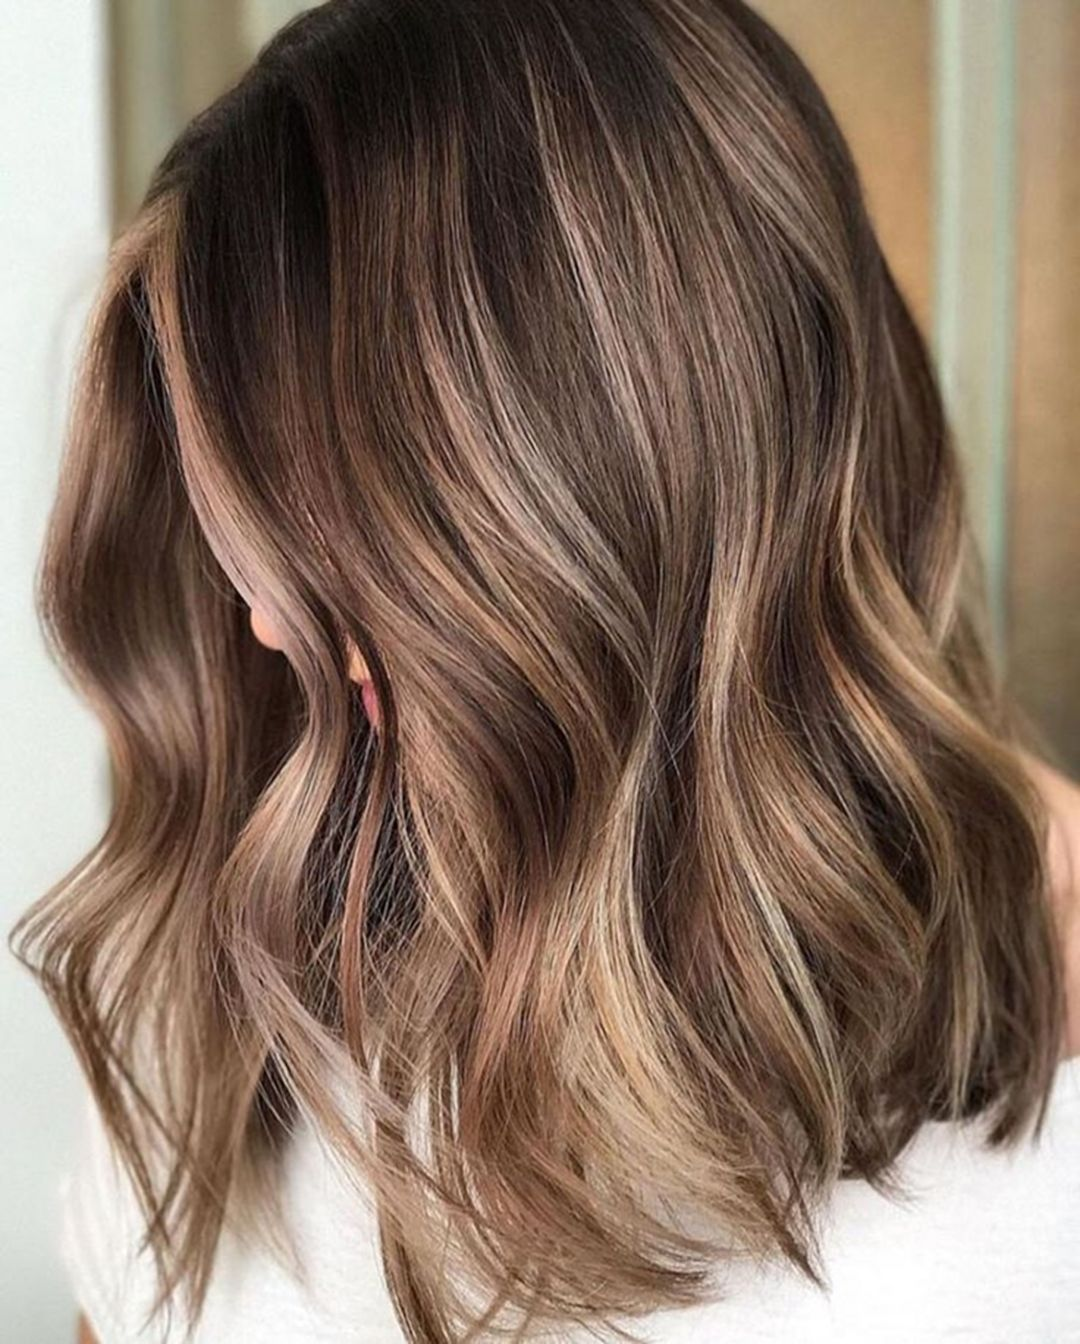 Top 25 Flattering Balayage Hair Color Ideas Trend 2019 | Hairstyles